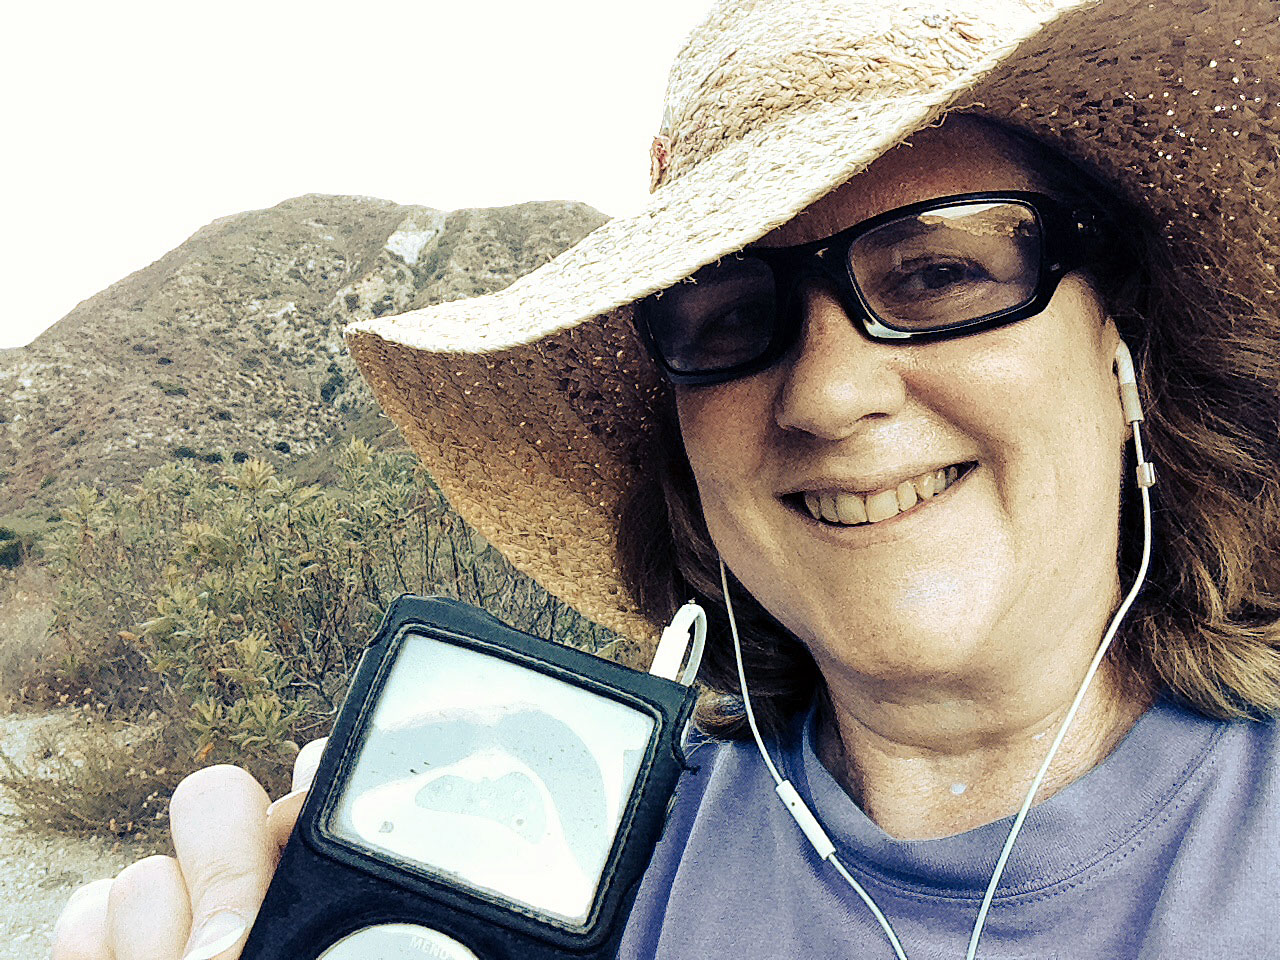 Laurie with her iPod hiking